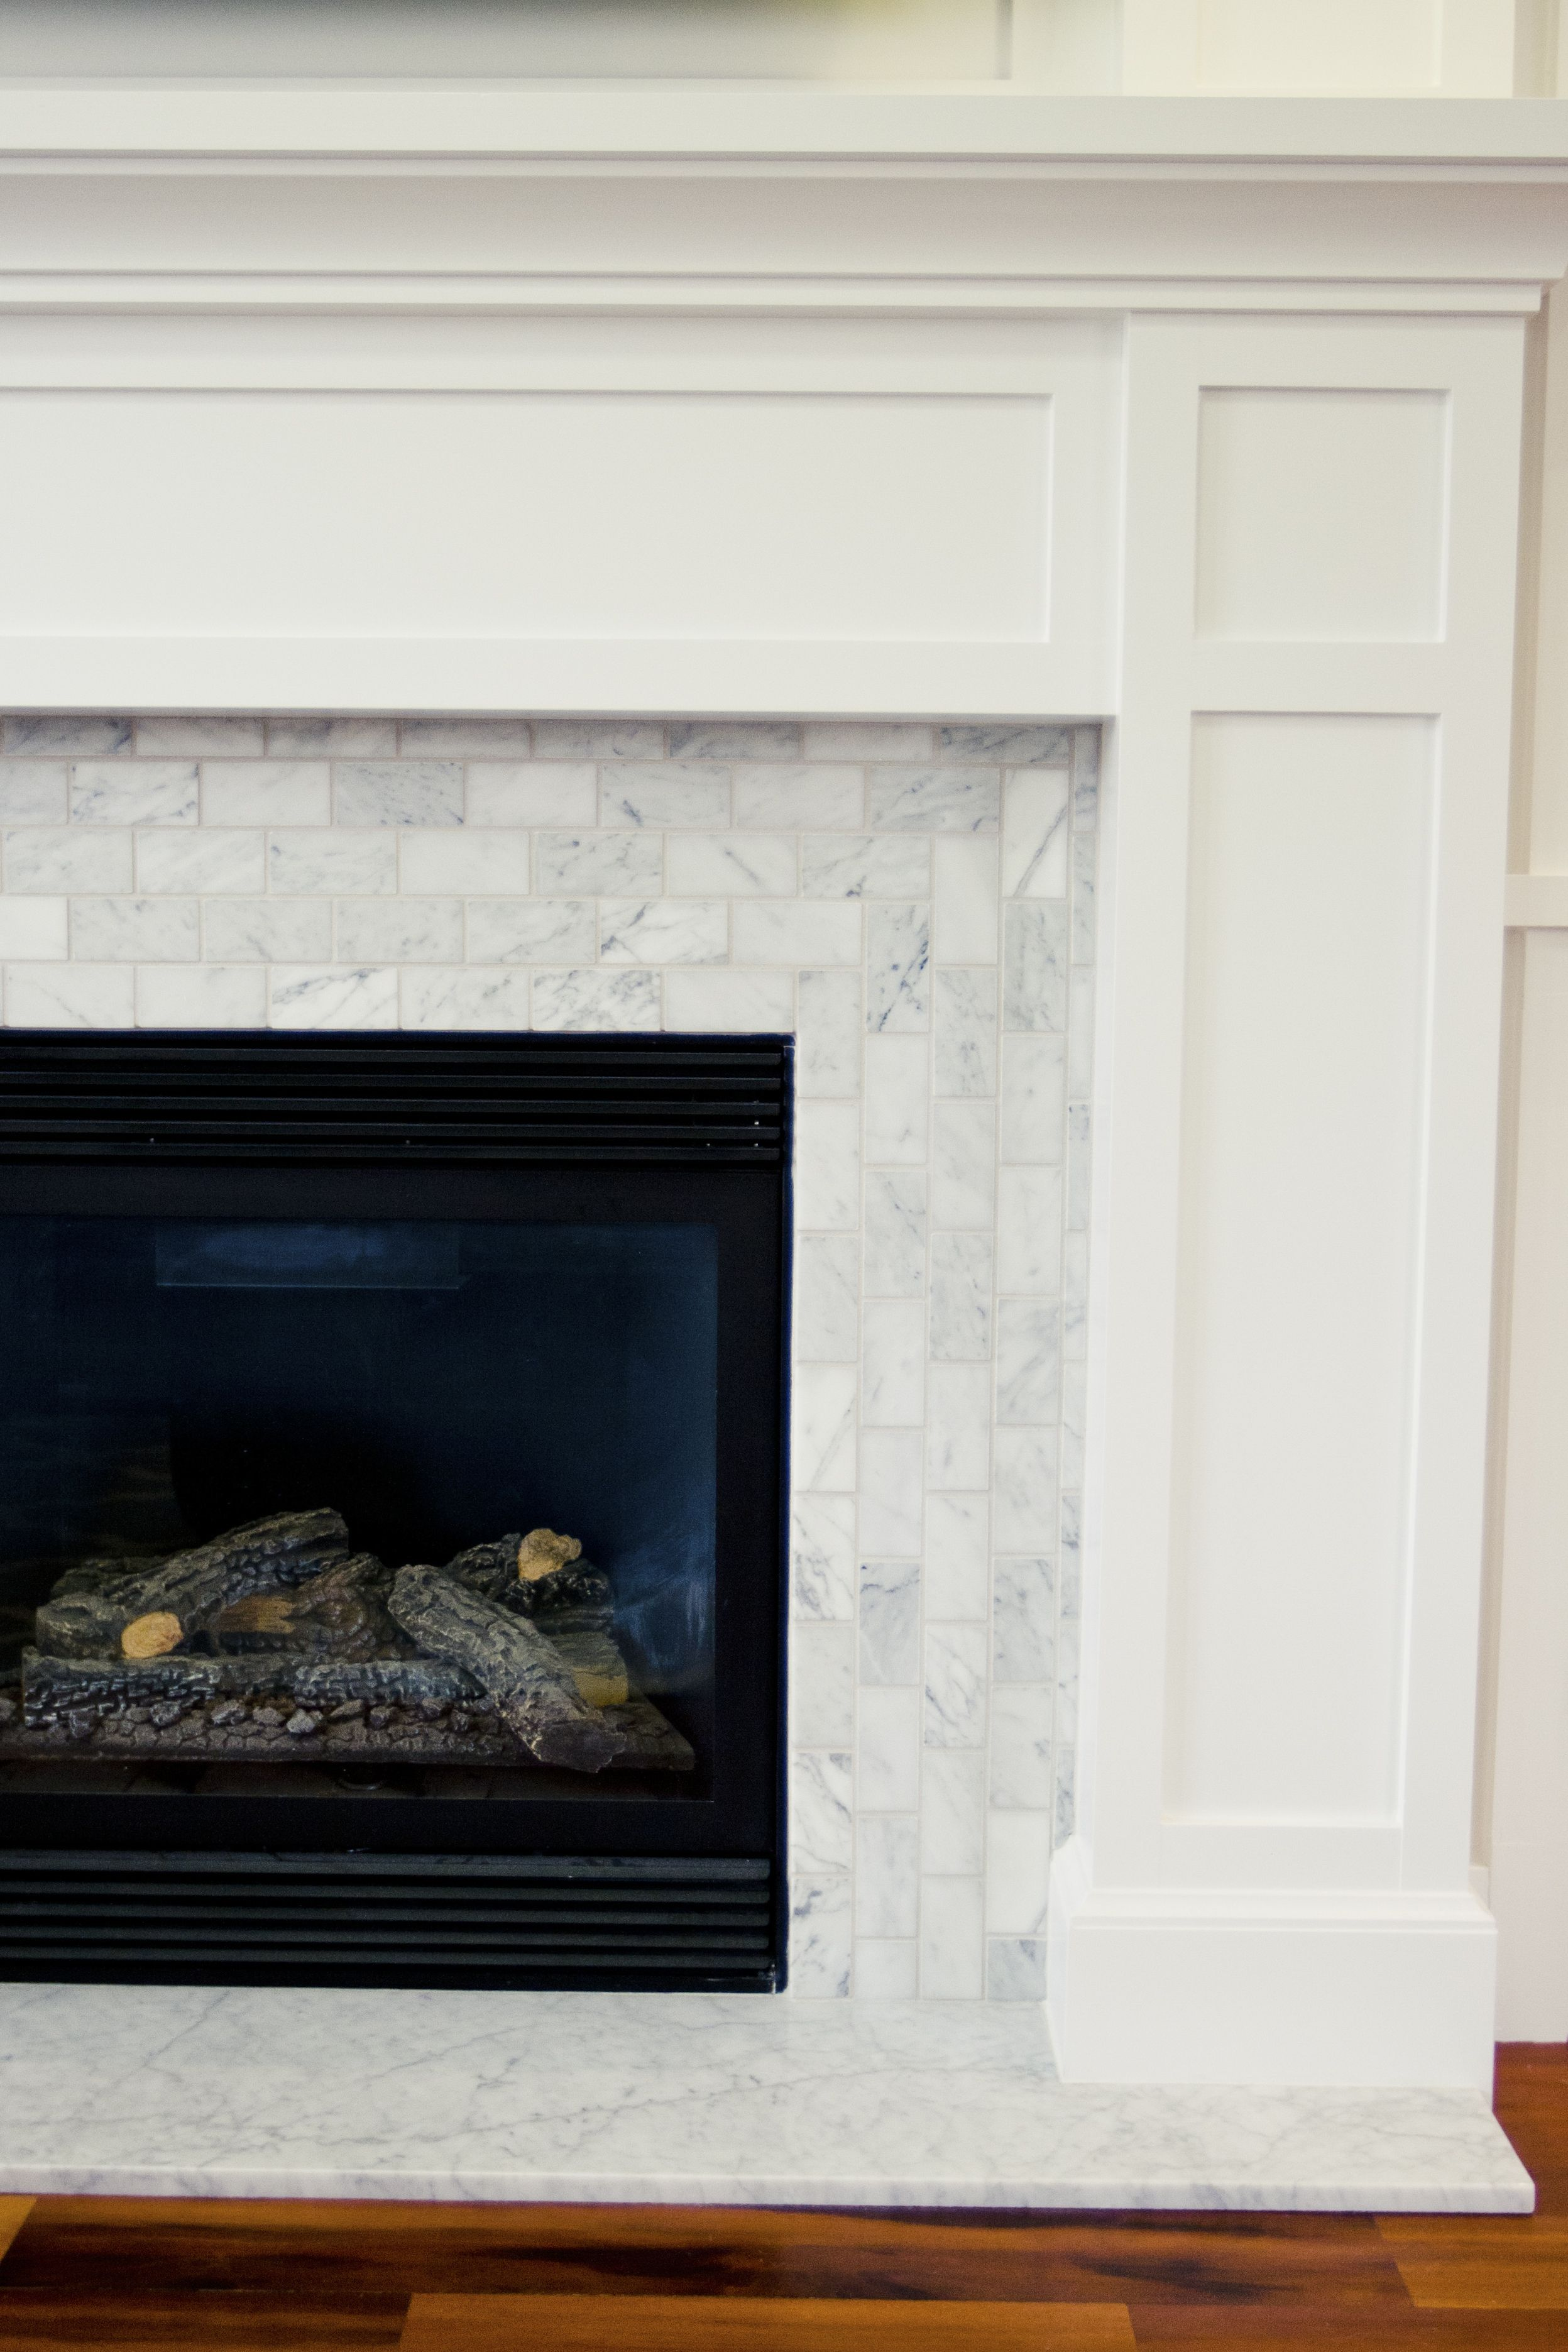 carrara tile horizontal and vertical and fireplace millwork